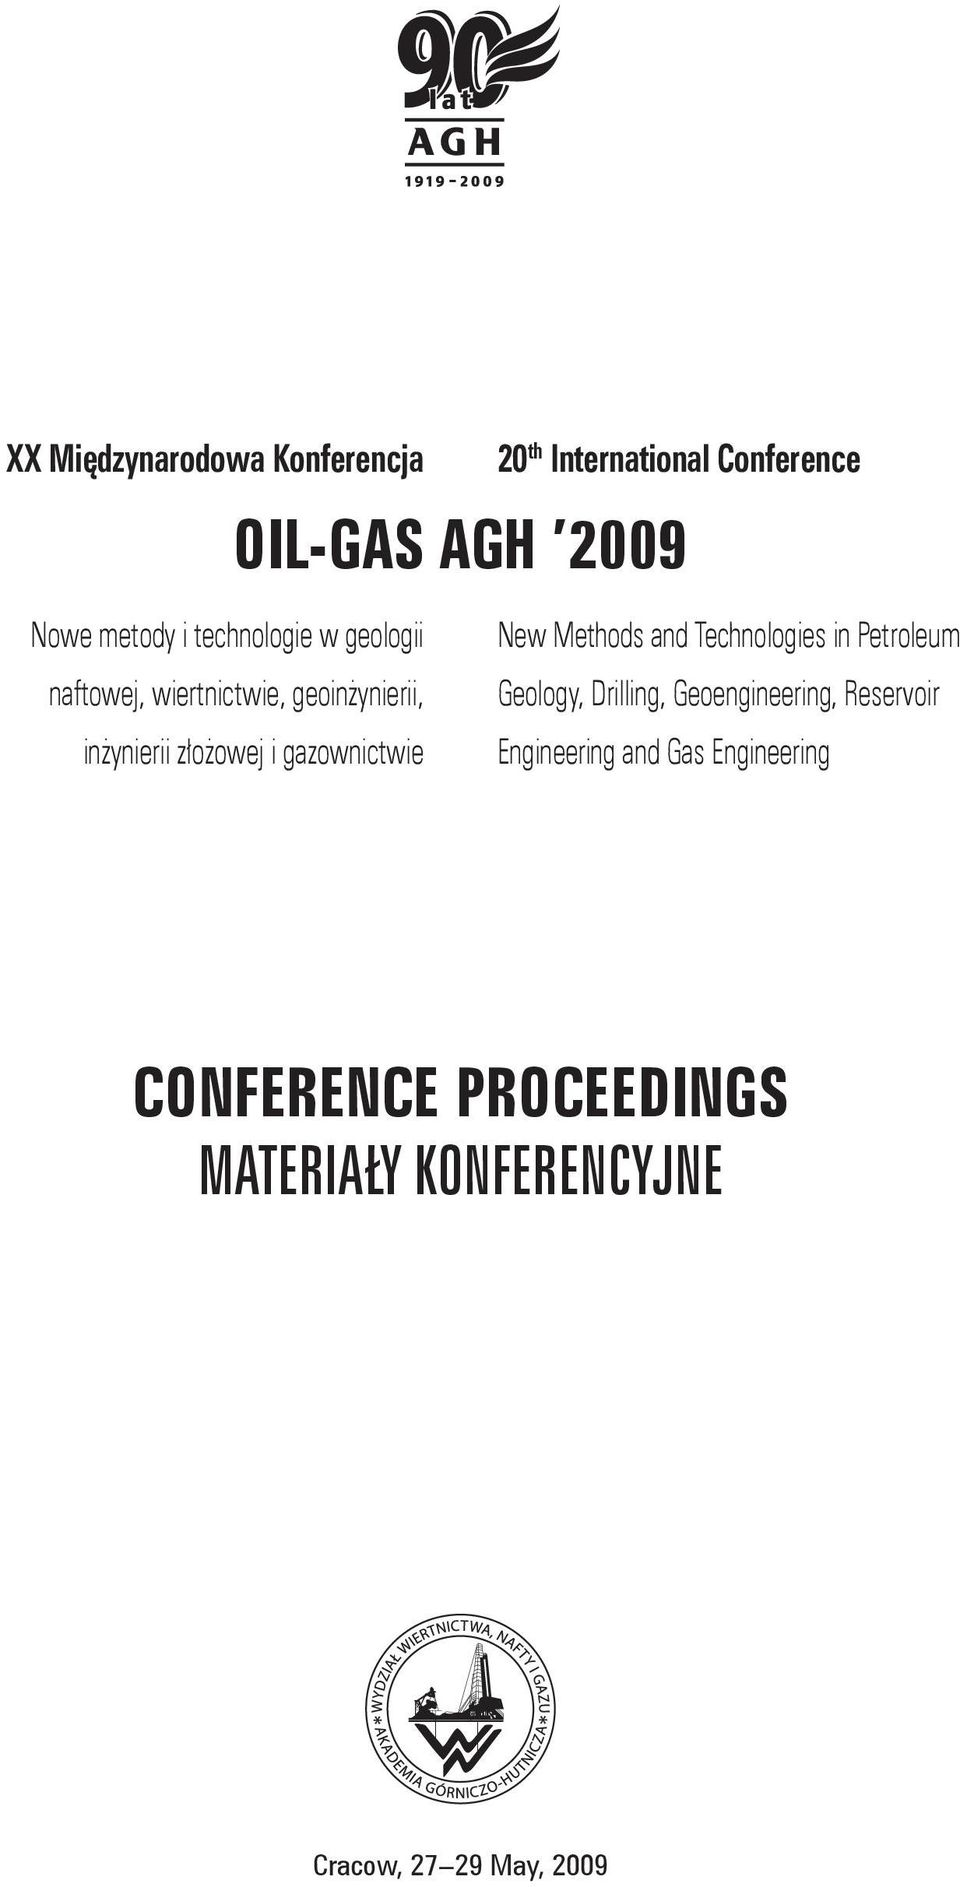 gazownictwie New Methods and Technologies in Petroleum Geology, Drilling, Geoengineering,